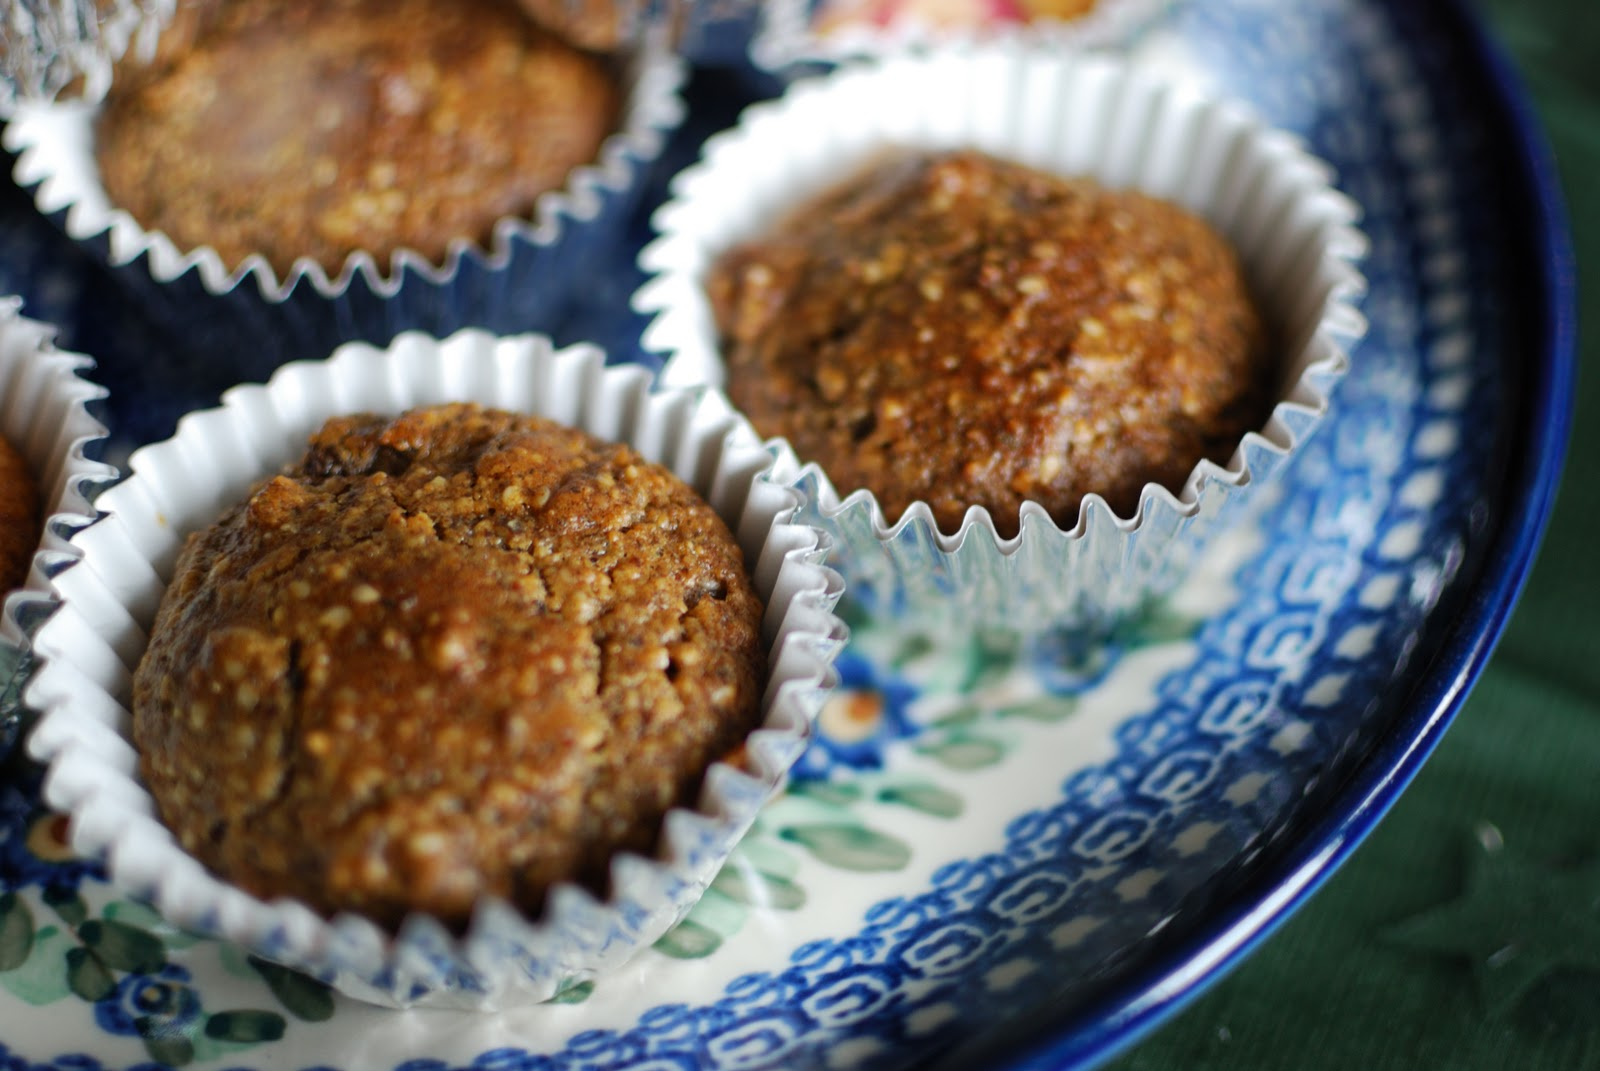 Claire's Corner: Bran muffins and peanut butter cookies